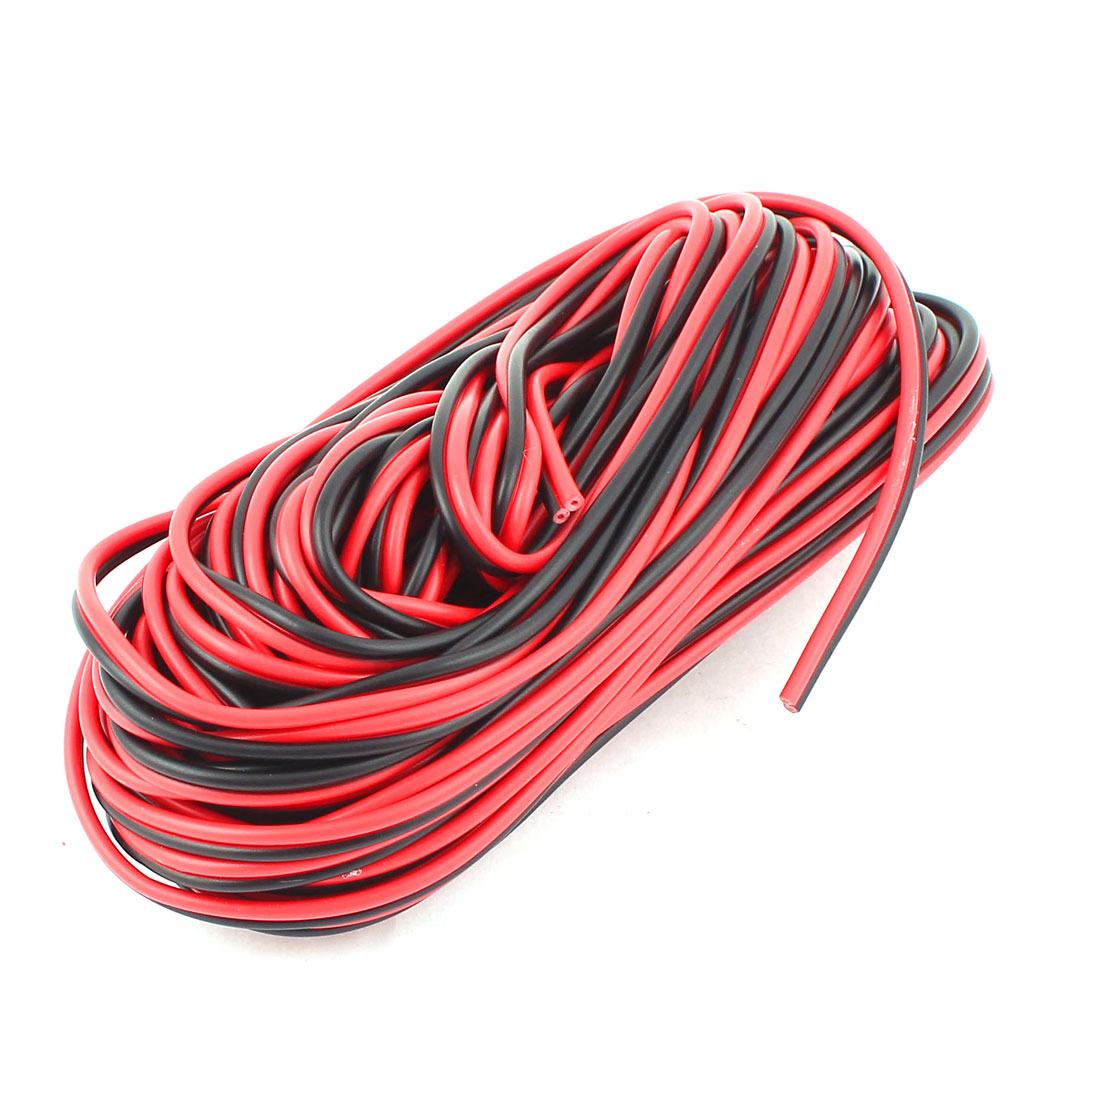 Indoor Outdoor Plastic Insulated Multicore Electrical Wire Cable Black Red 15M 49Feet